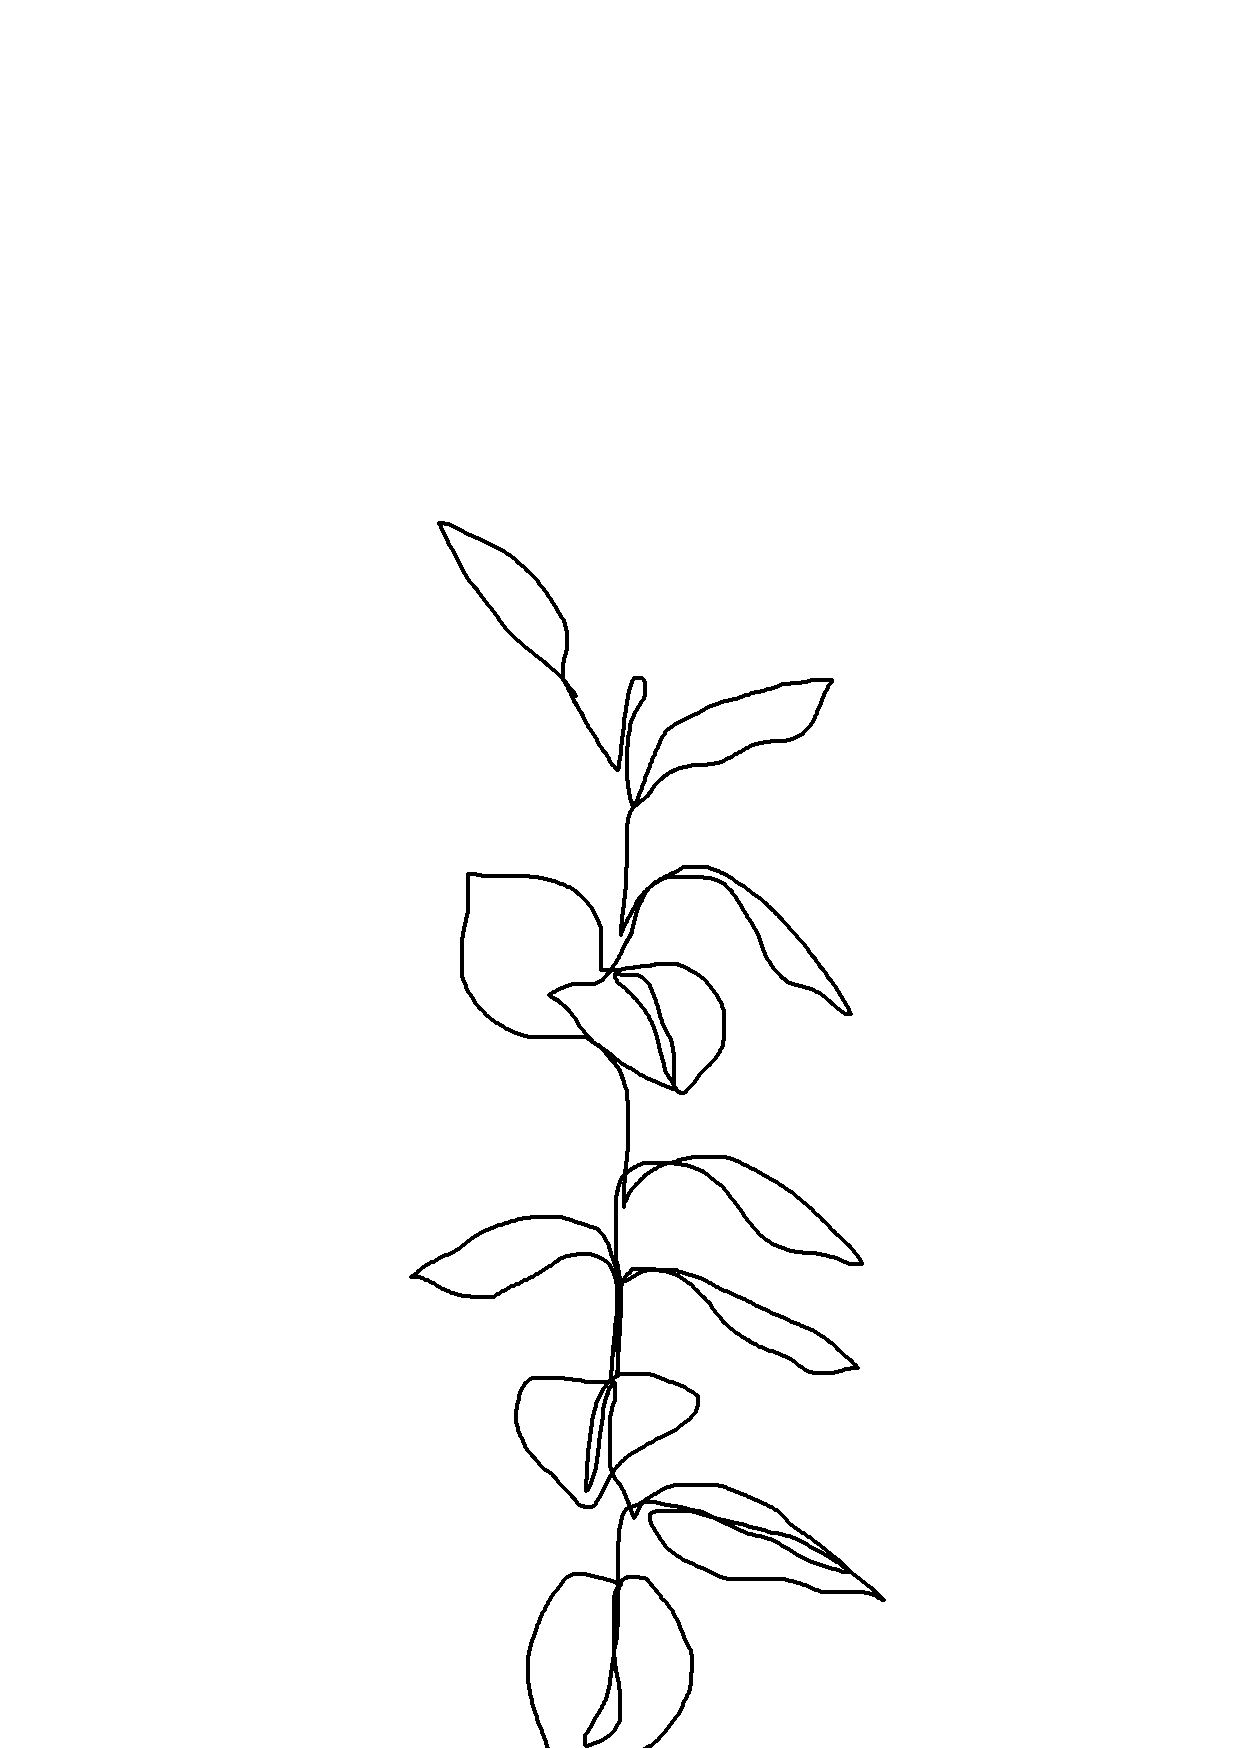 Single Line Drawing Flowers : One line minimal artwork plants and leaves minimalist